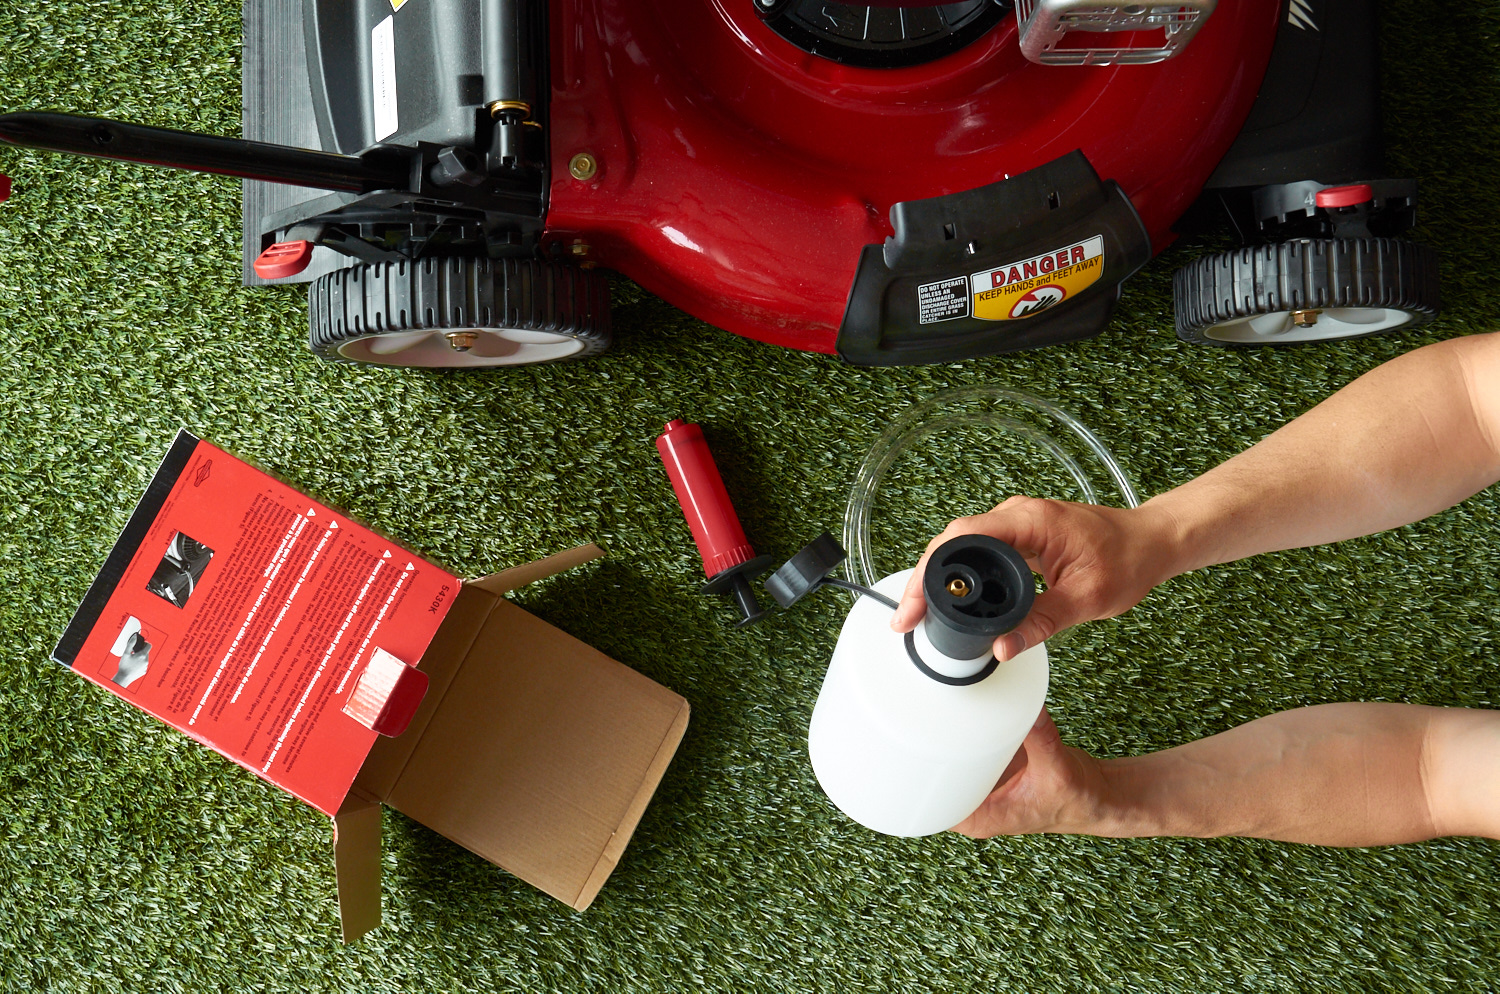 This is How You Should Tune Up Your Lawnmower for Spring | Man Made DIY | Crafts for Men